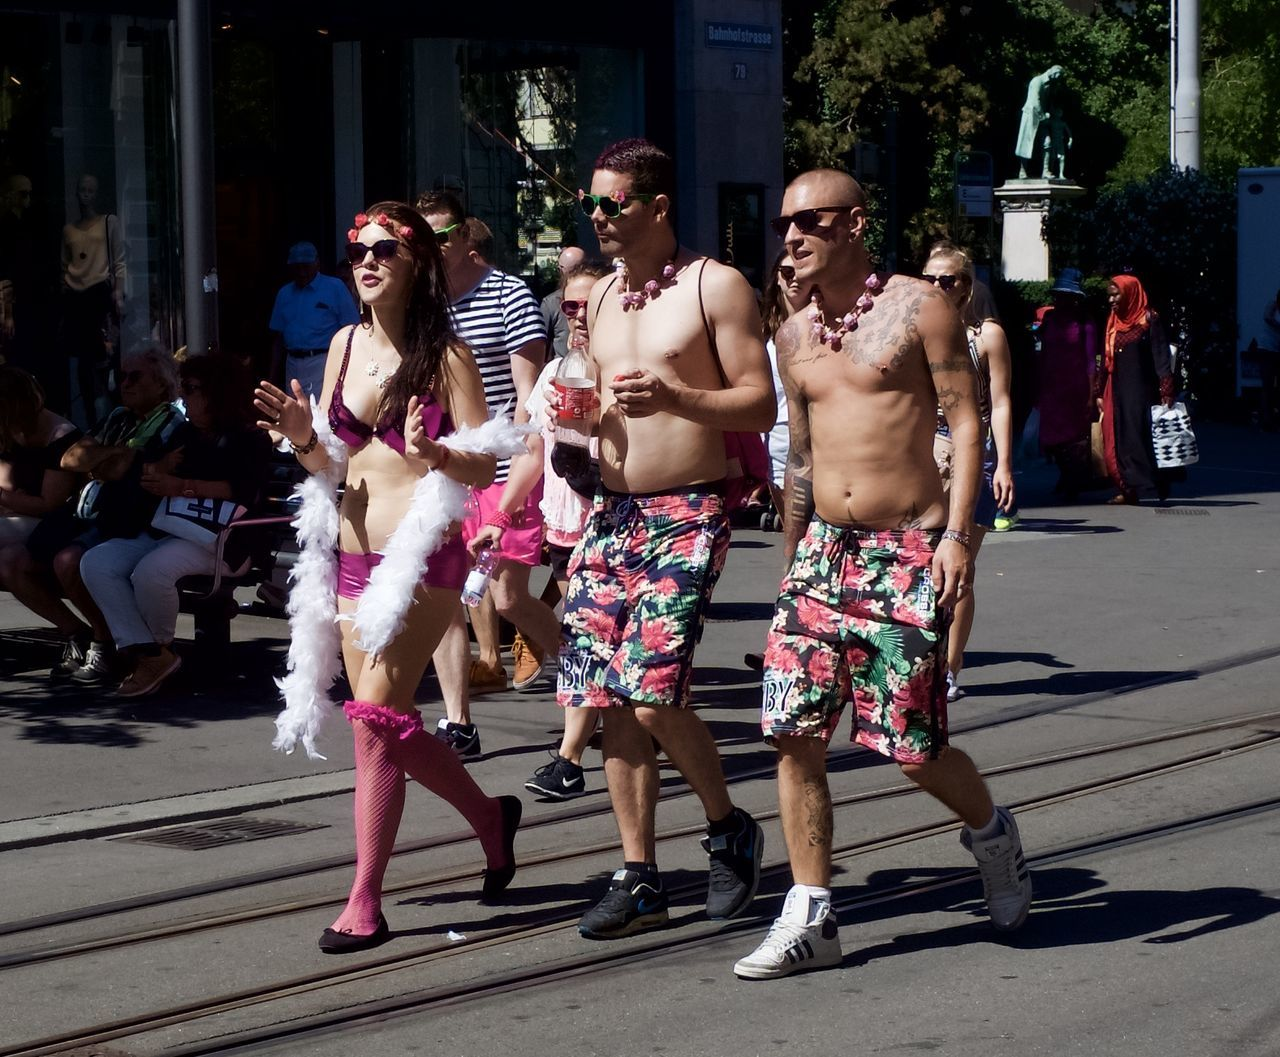 had a break to view to the people going to the street parade 2016 in Zürich Disguised Enjoying Life Enjoying The Sun Fun Funtimes Hello World Rave Raveparty Ricohgr2 Streetparade Zurich Streetparade2016 Sun-fun Switzerland_2016 Zürich Festival Season Festival Fever Festive Season